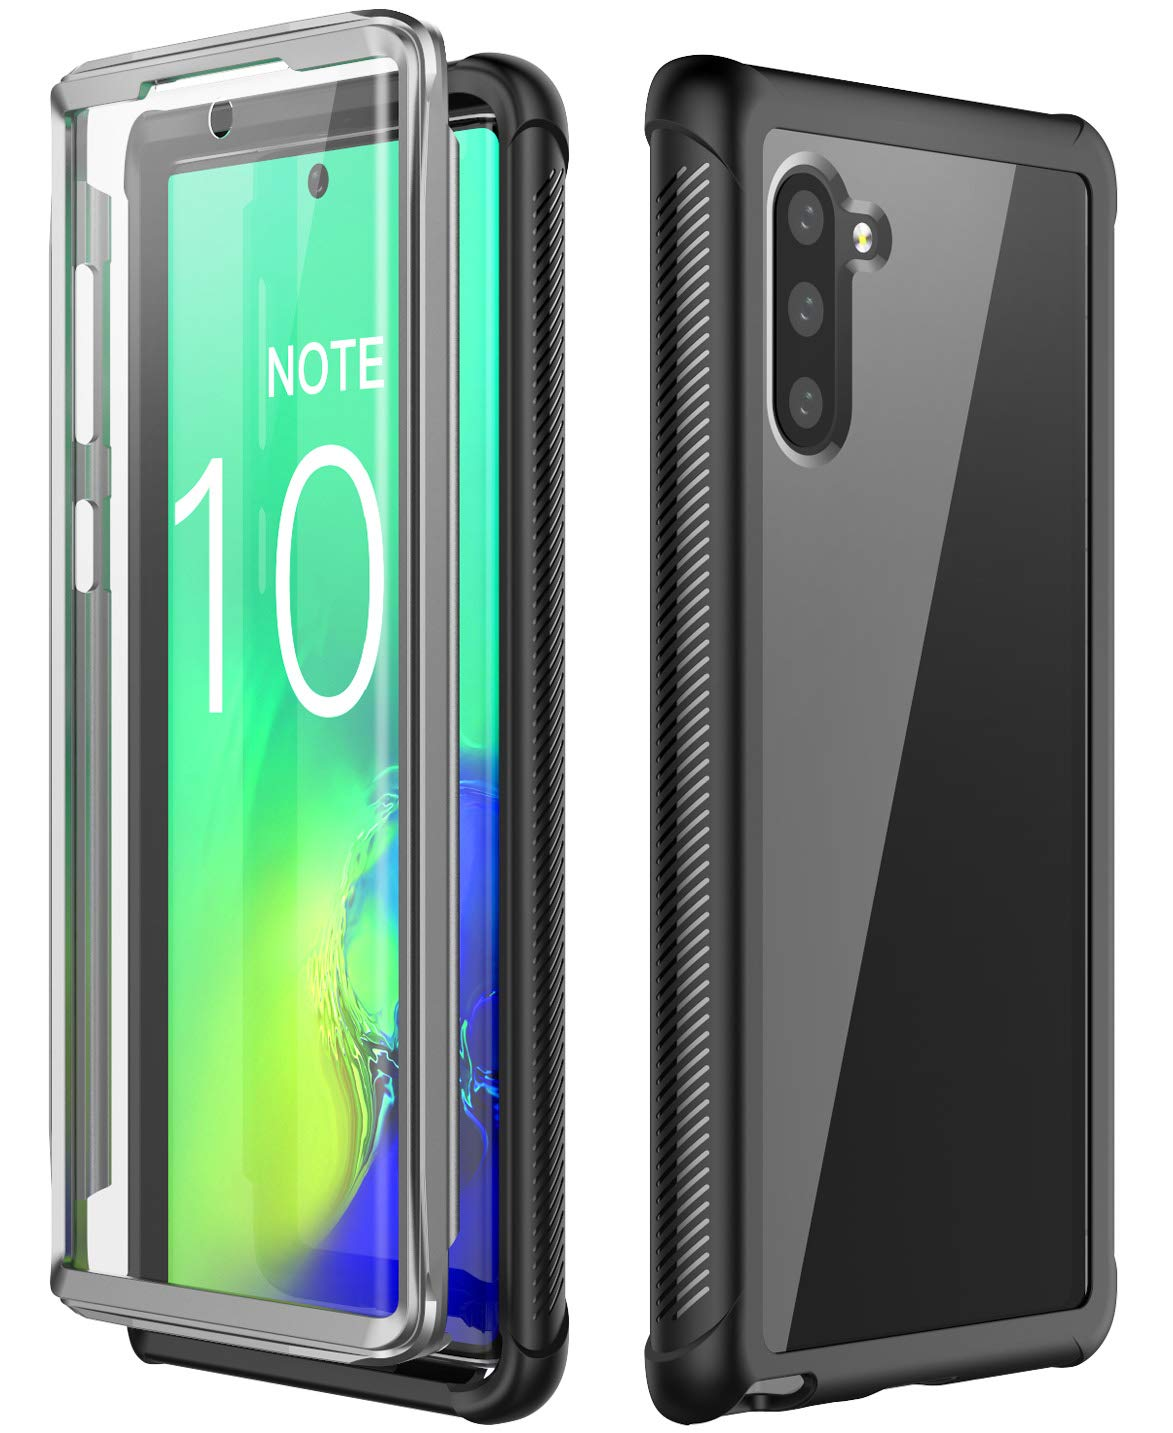 SPIDERCASE case for Galaxy Note 10 Case